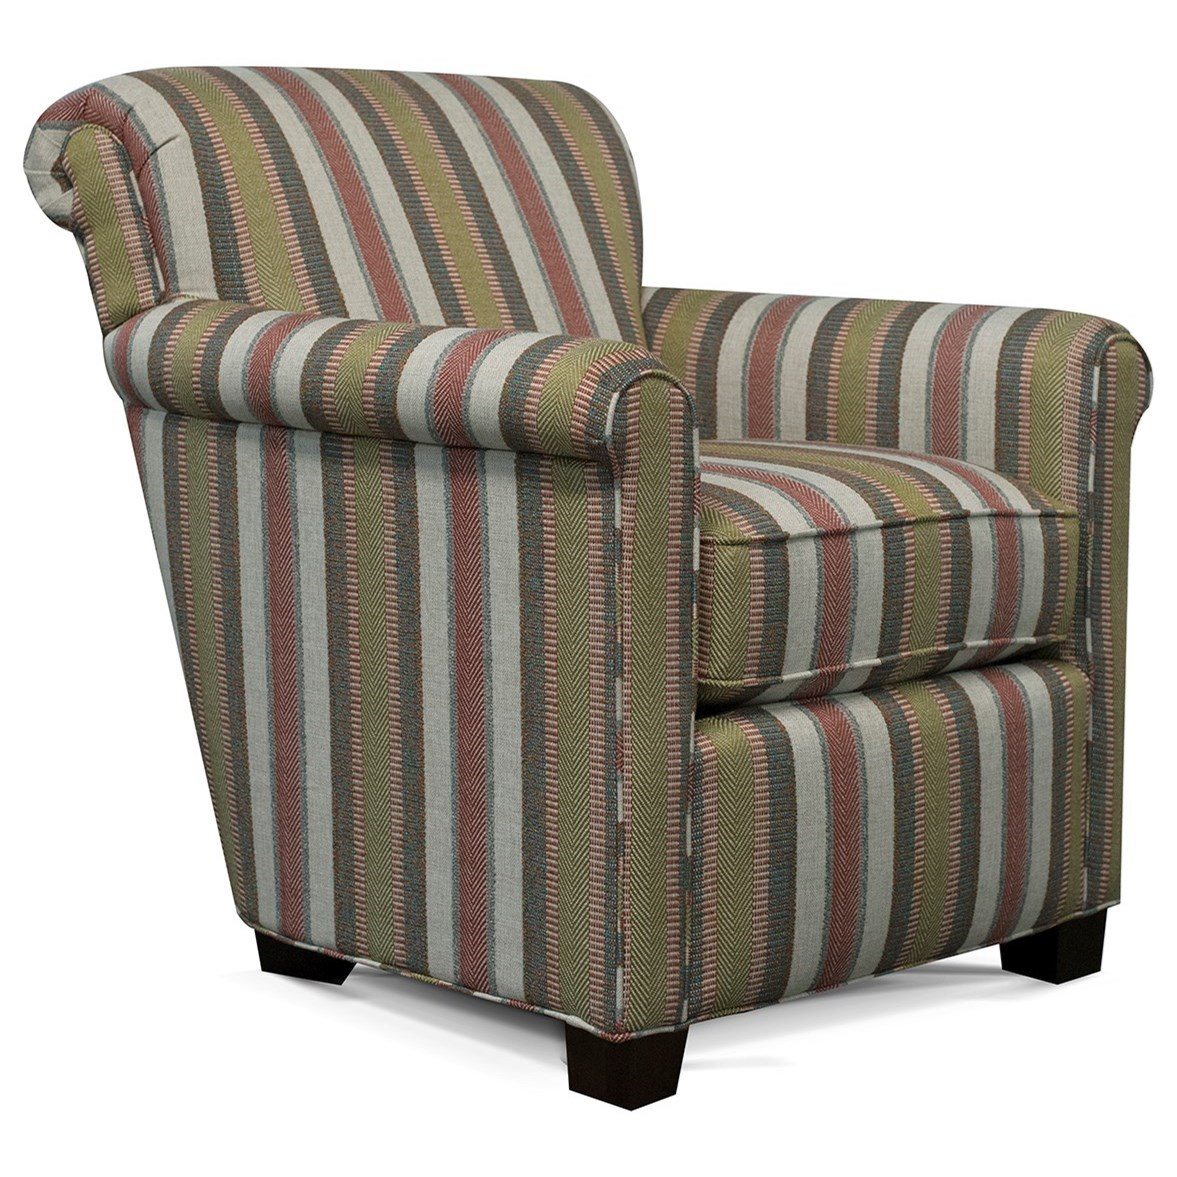 Cunningham Rolled Back Chair by England at Sadler's Home Furnishings